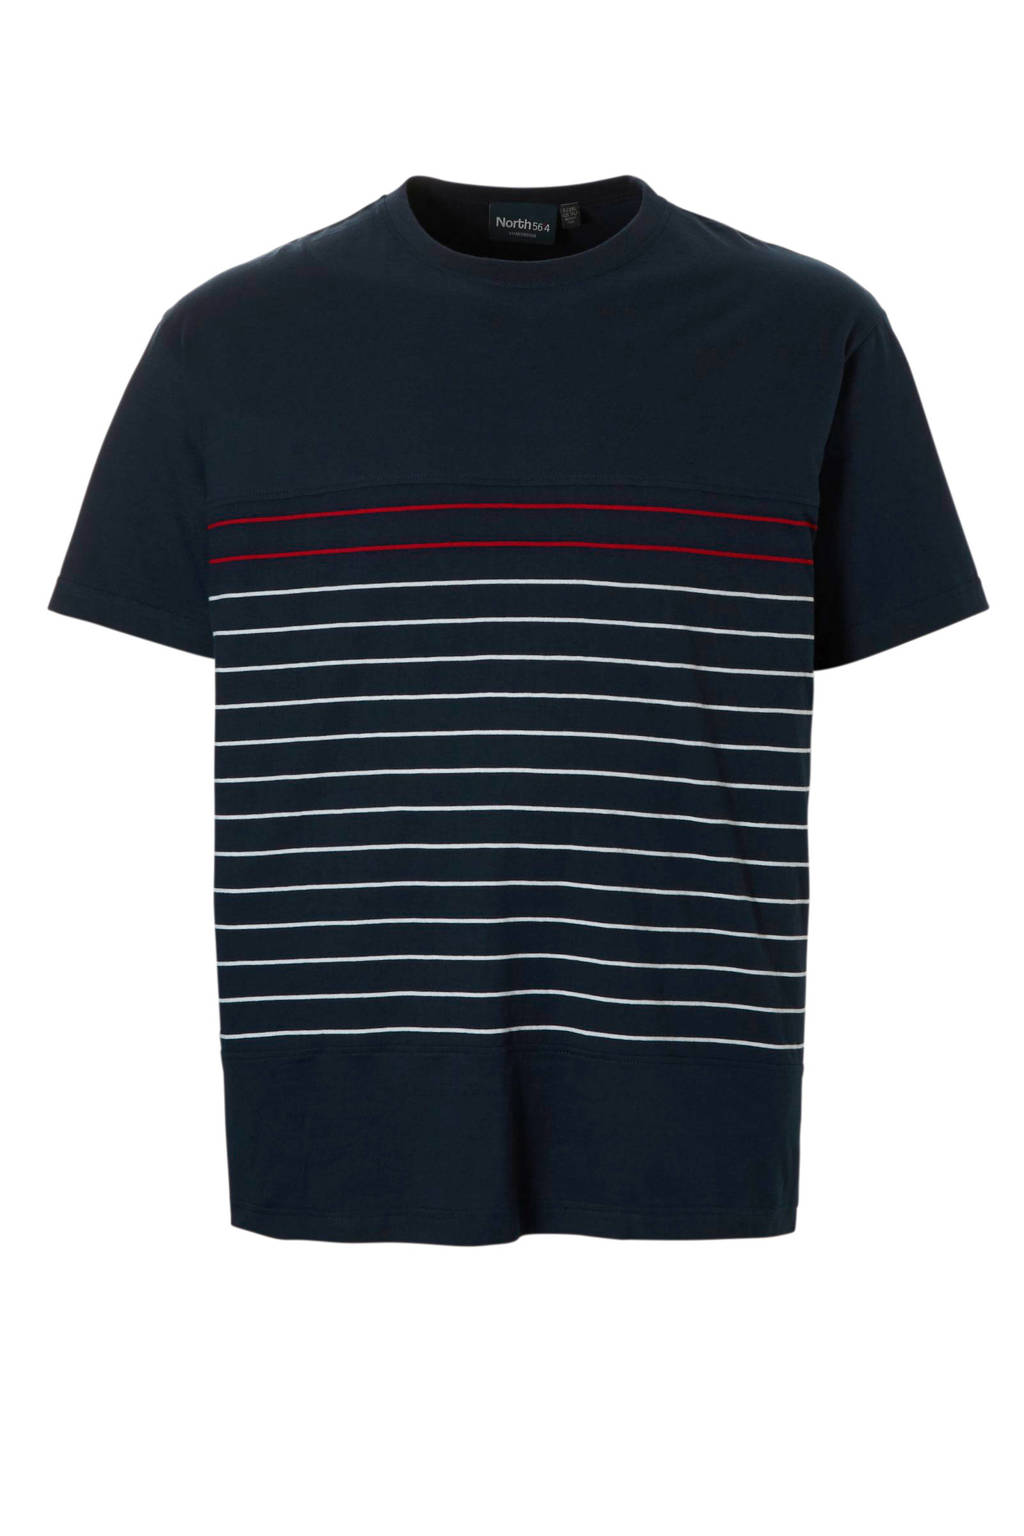 North 56°4 +size t-shirt, Donkerblauw